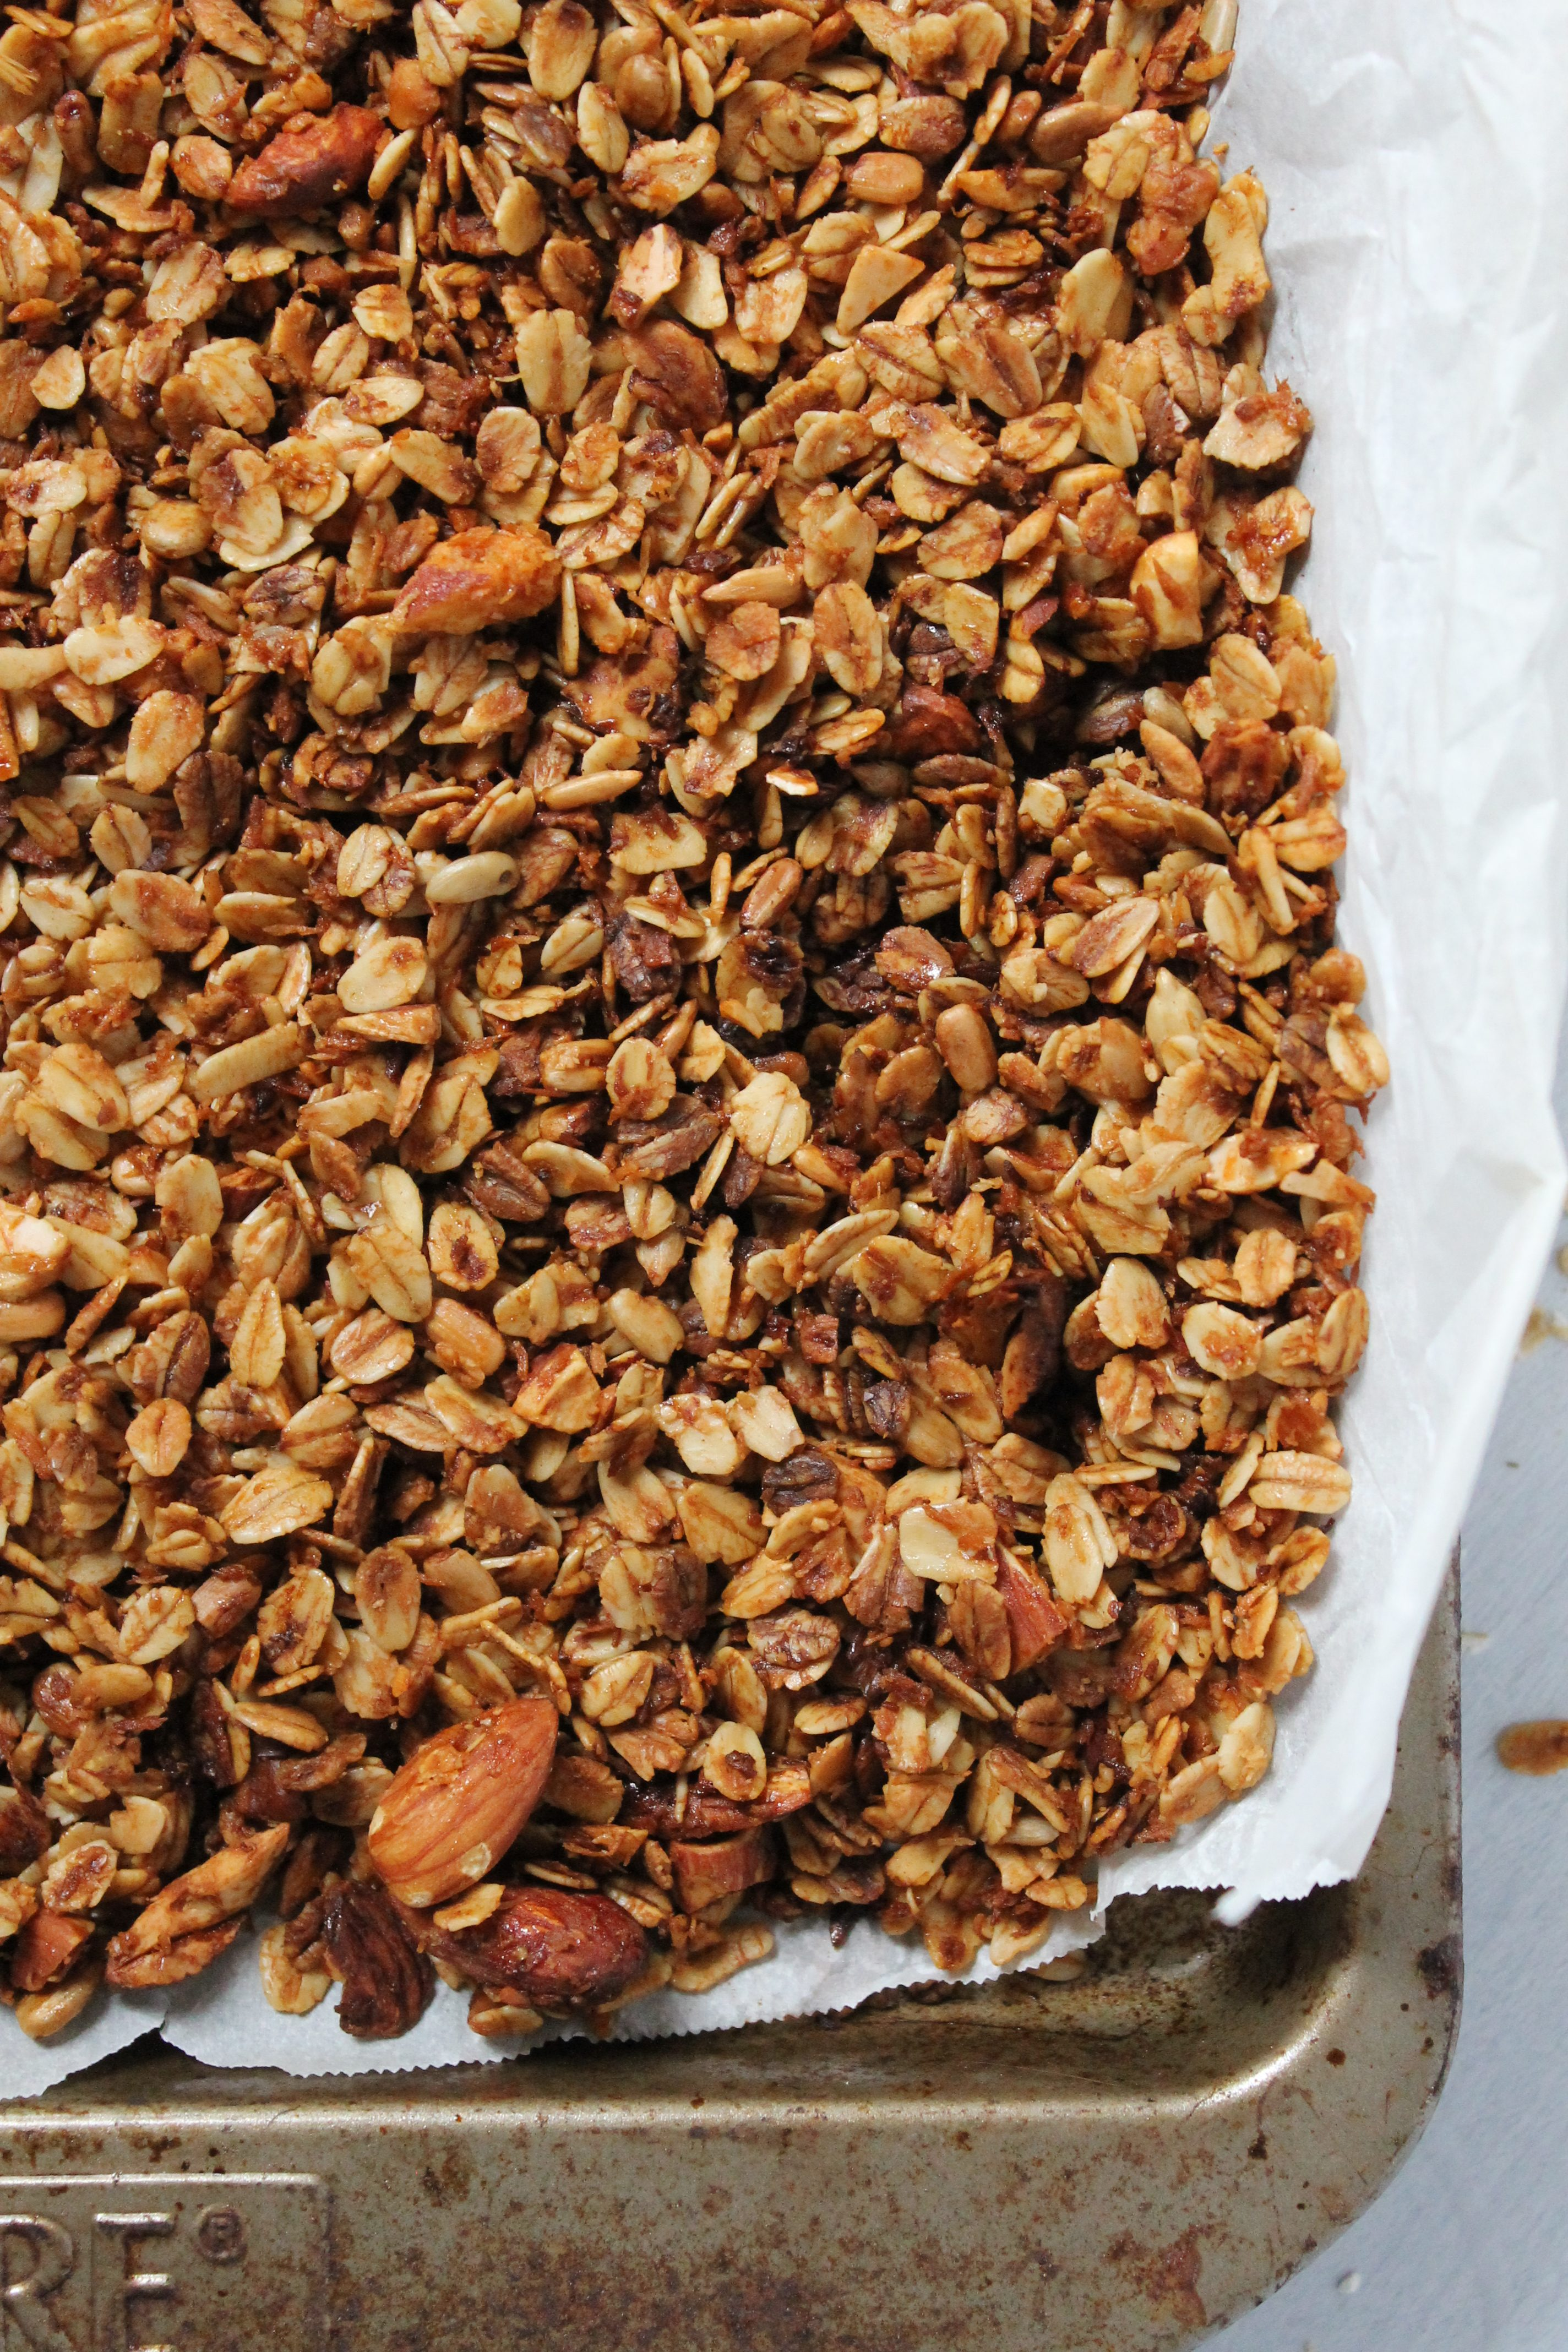 homemade granola with almonds on a sheet pan